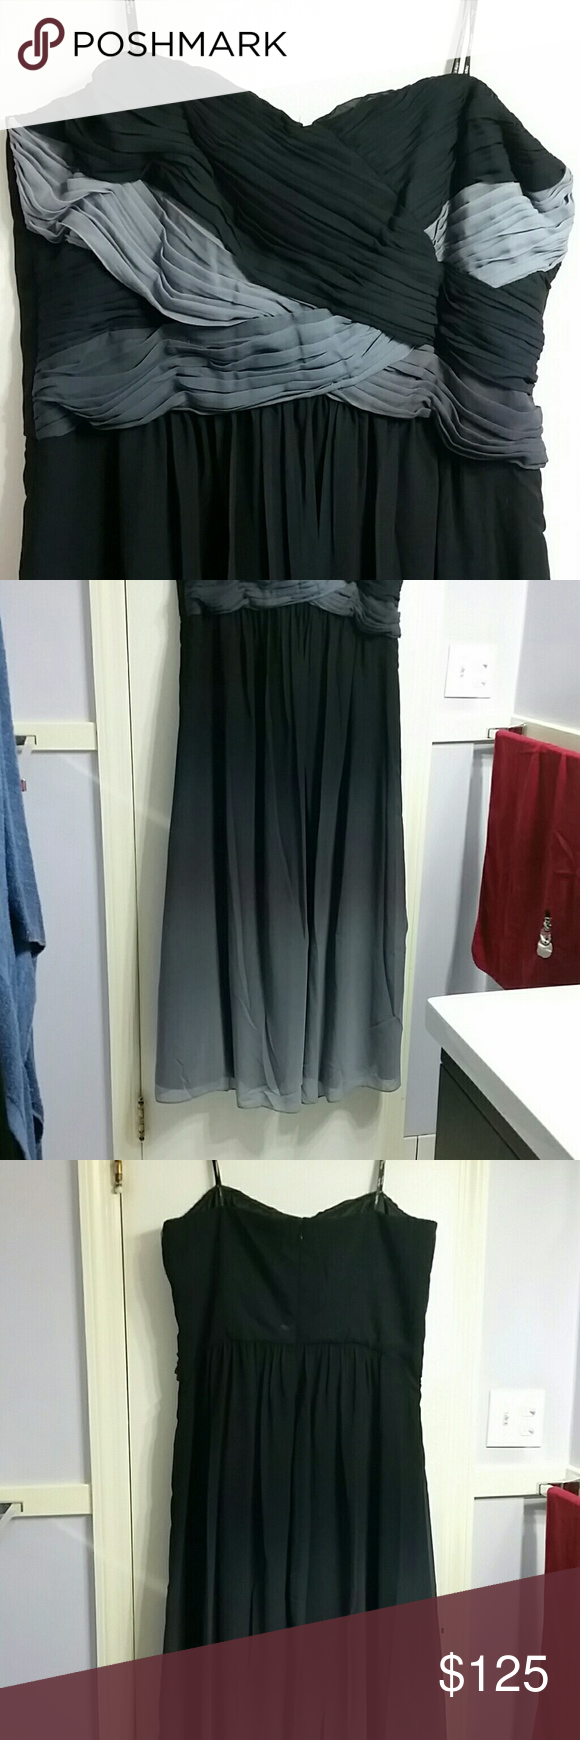 Floor length ombre strapless dress strapless dress city chic and